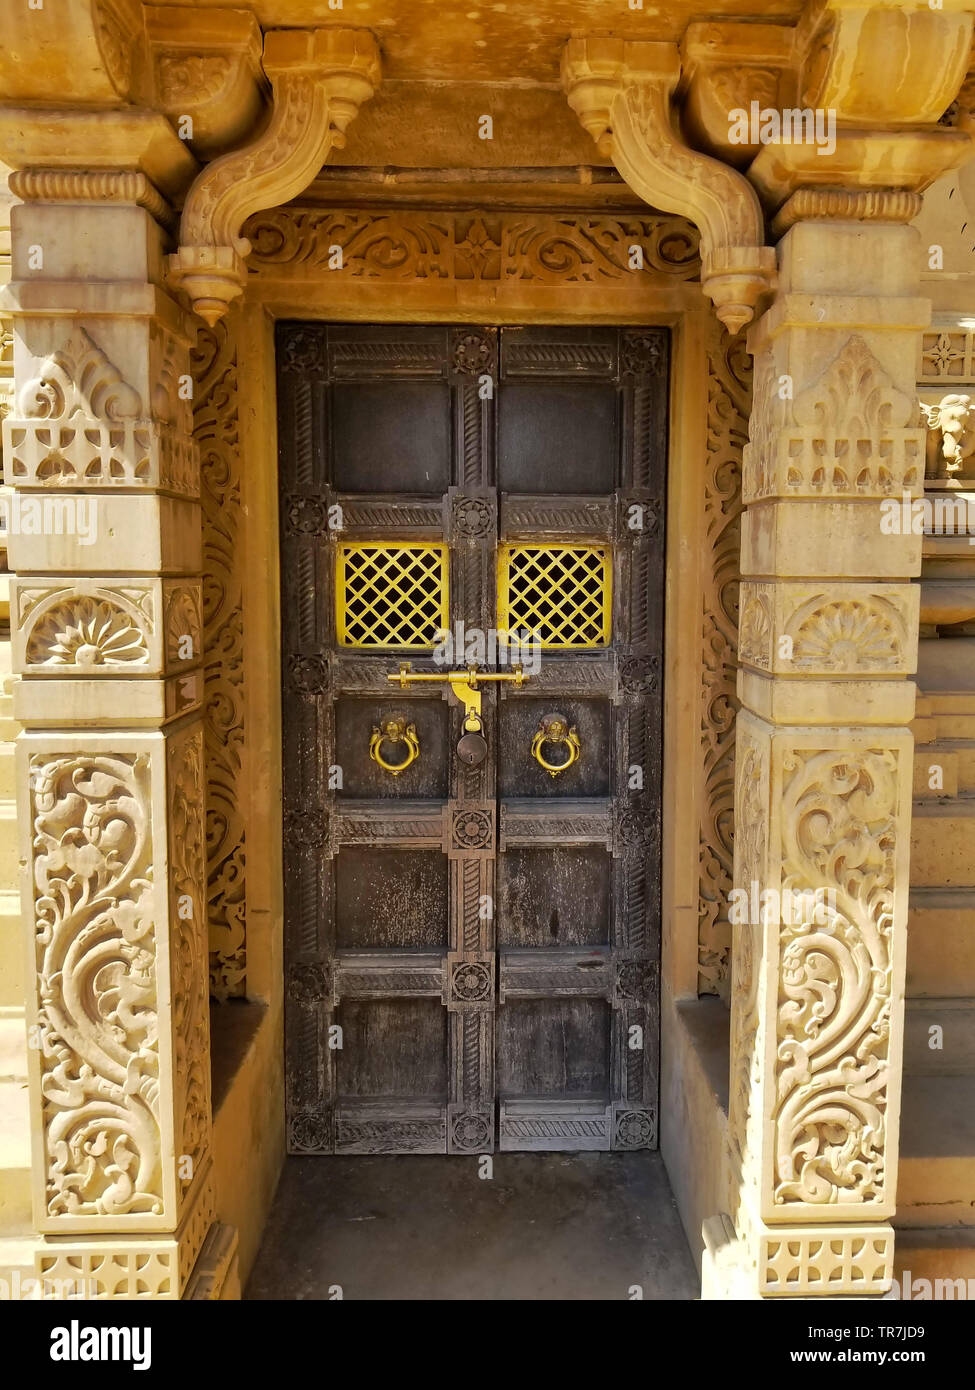 Decorative wooden door of the Manasthamba (or column of honor) at Hutheesing Jain Temple located in Ahmedabad, Gujarat state, India - Stock Image